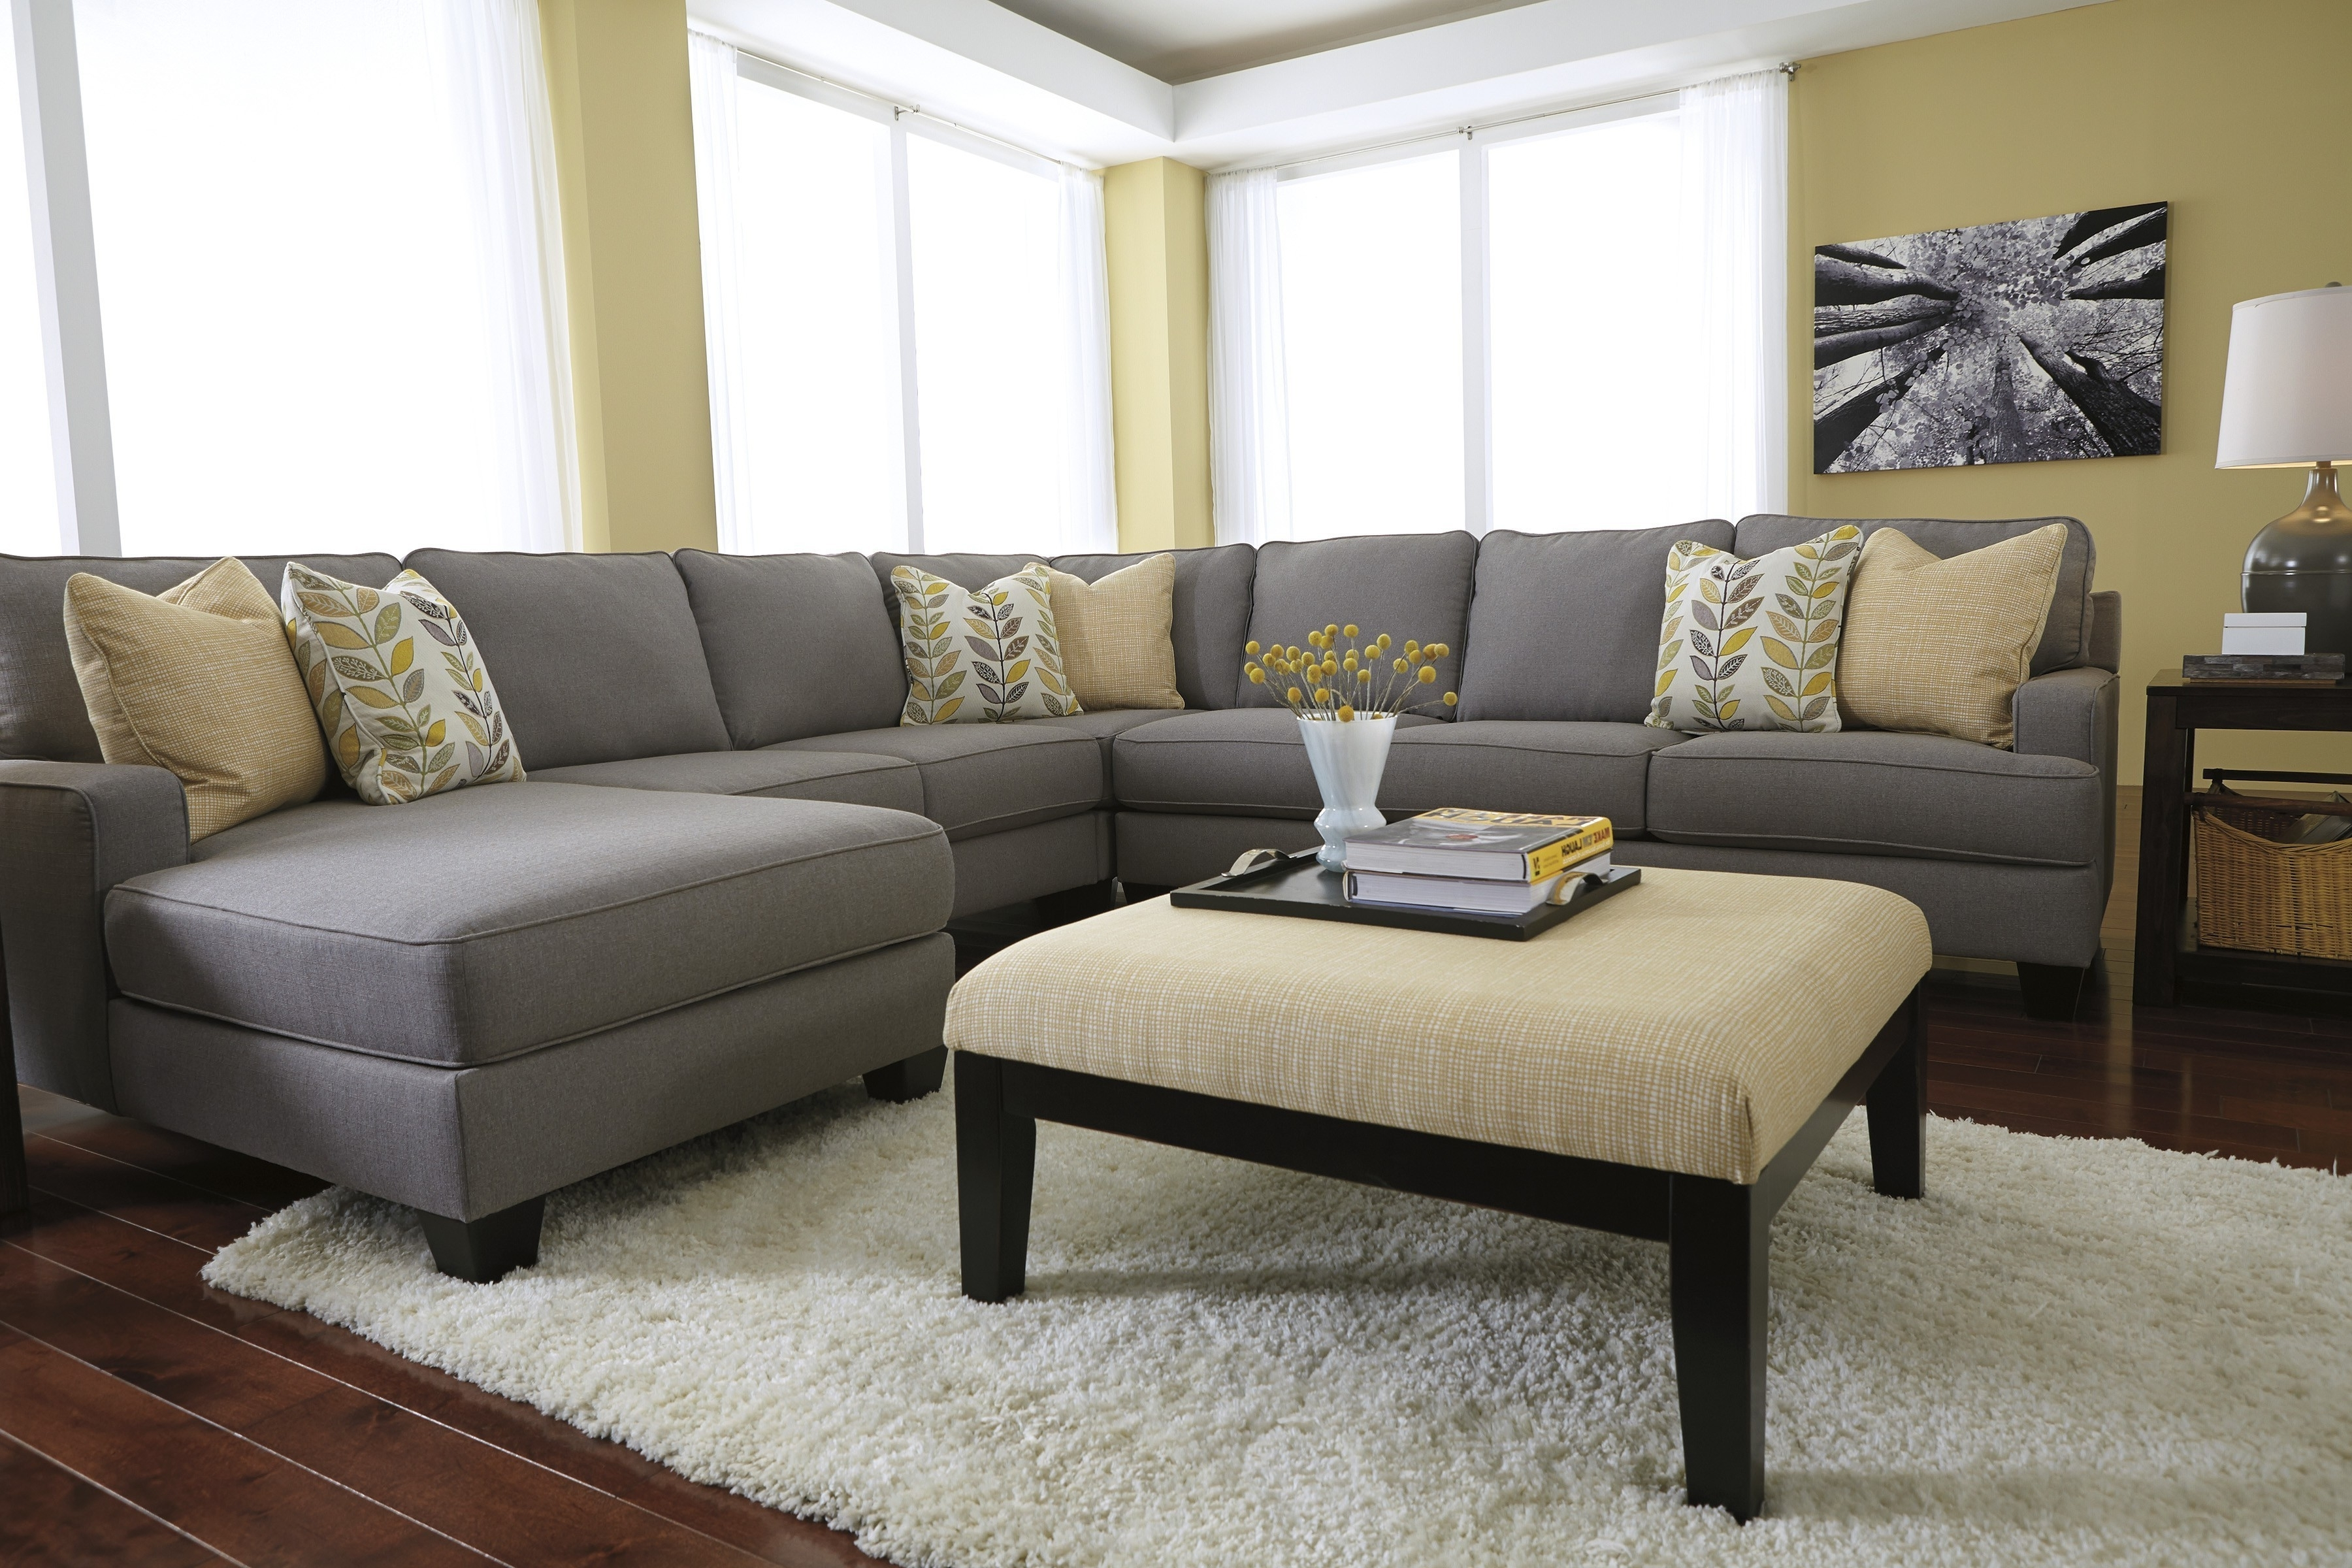 Fashionable Cool Perfect Light Grey Sectional Sofa 49 With Additional Small With Regard To Light Grey Sectional Sofas (Gallery 20 of 20)